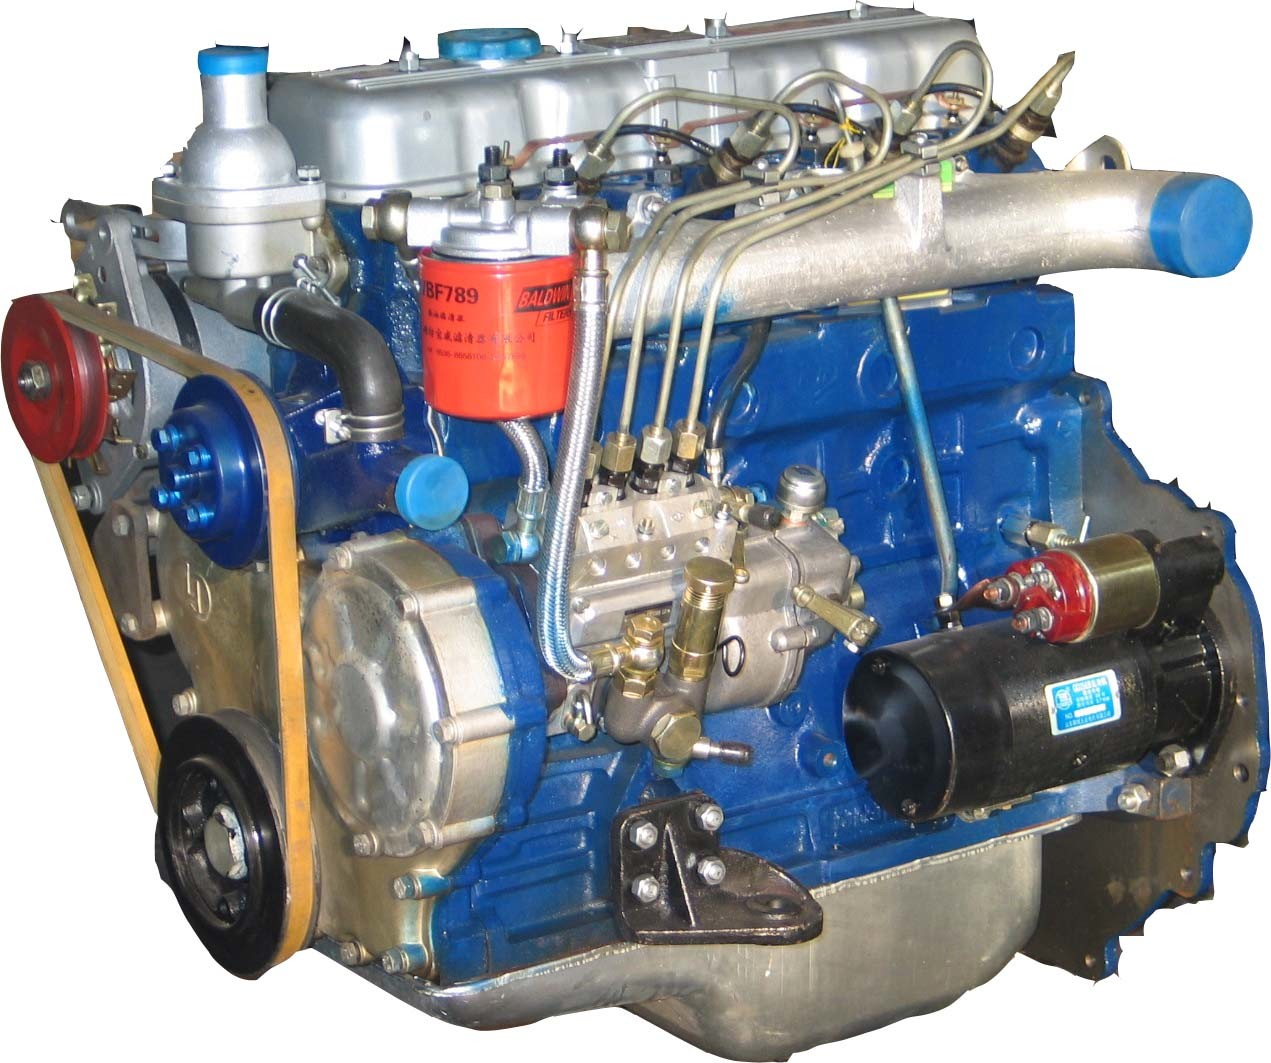 Diesel Engines for Harvest Machinery